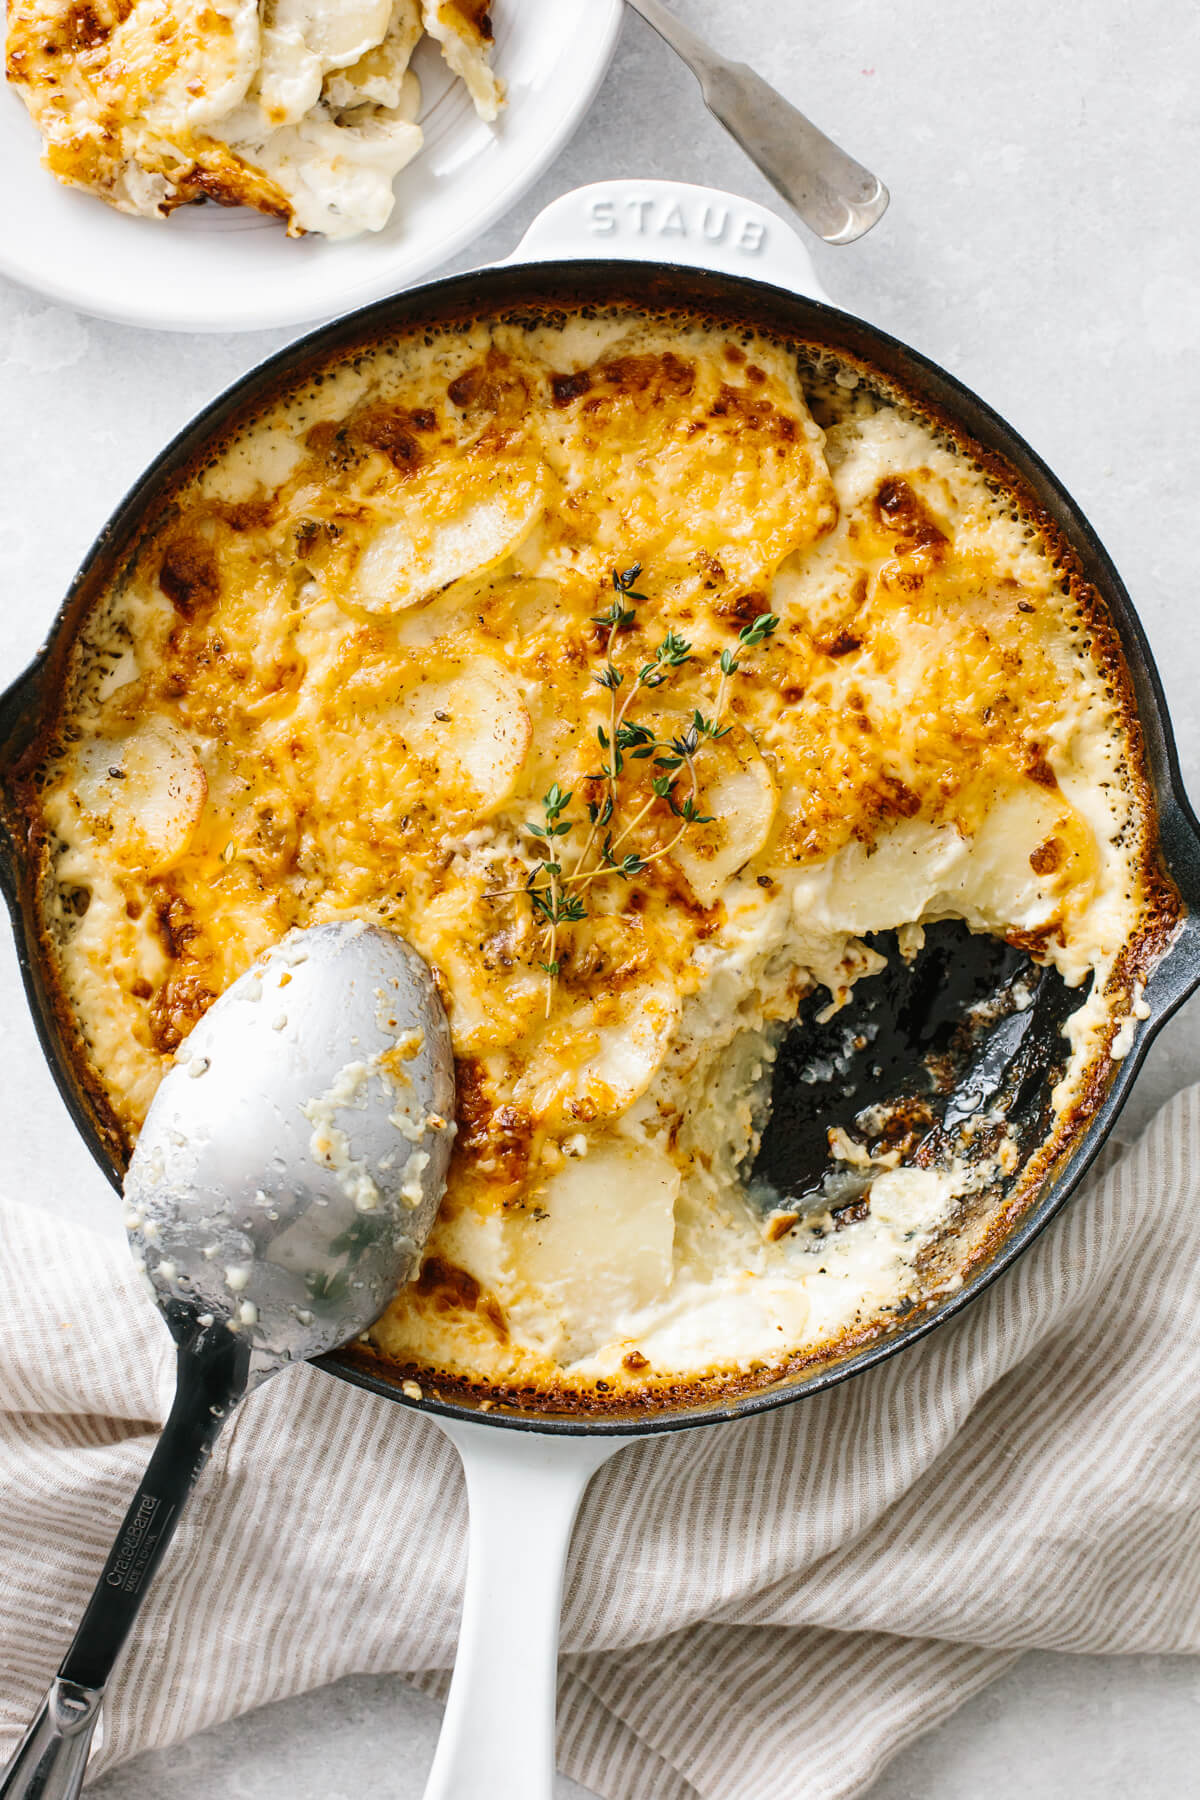 Scalloped potatoes in a pan.